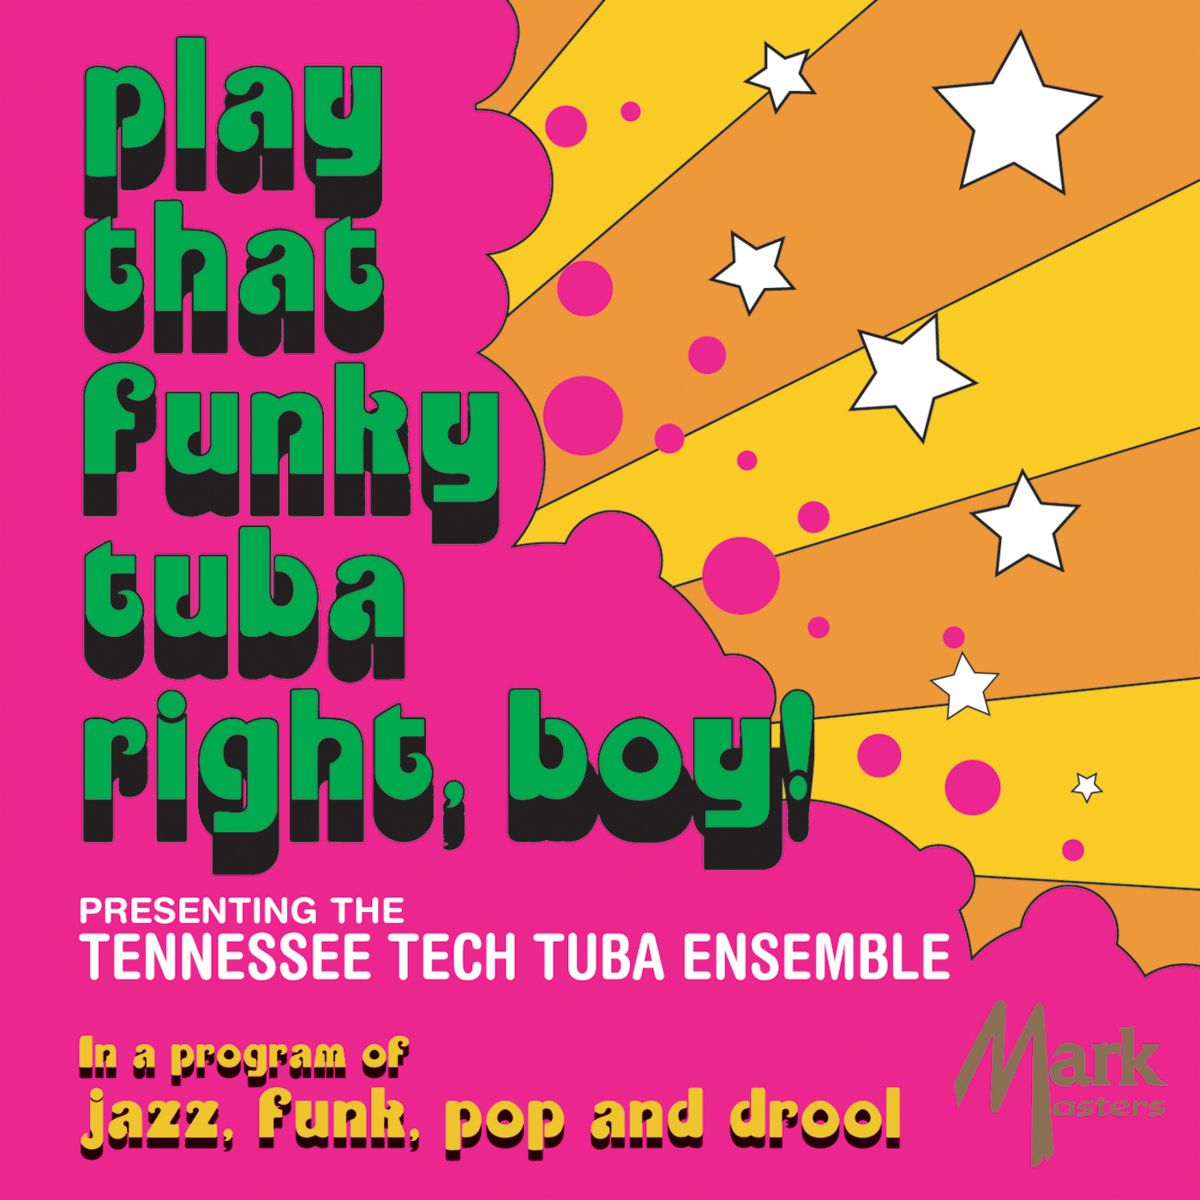 Play That Funky Tuba Right, Boy! - hier klicken